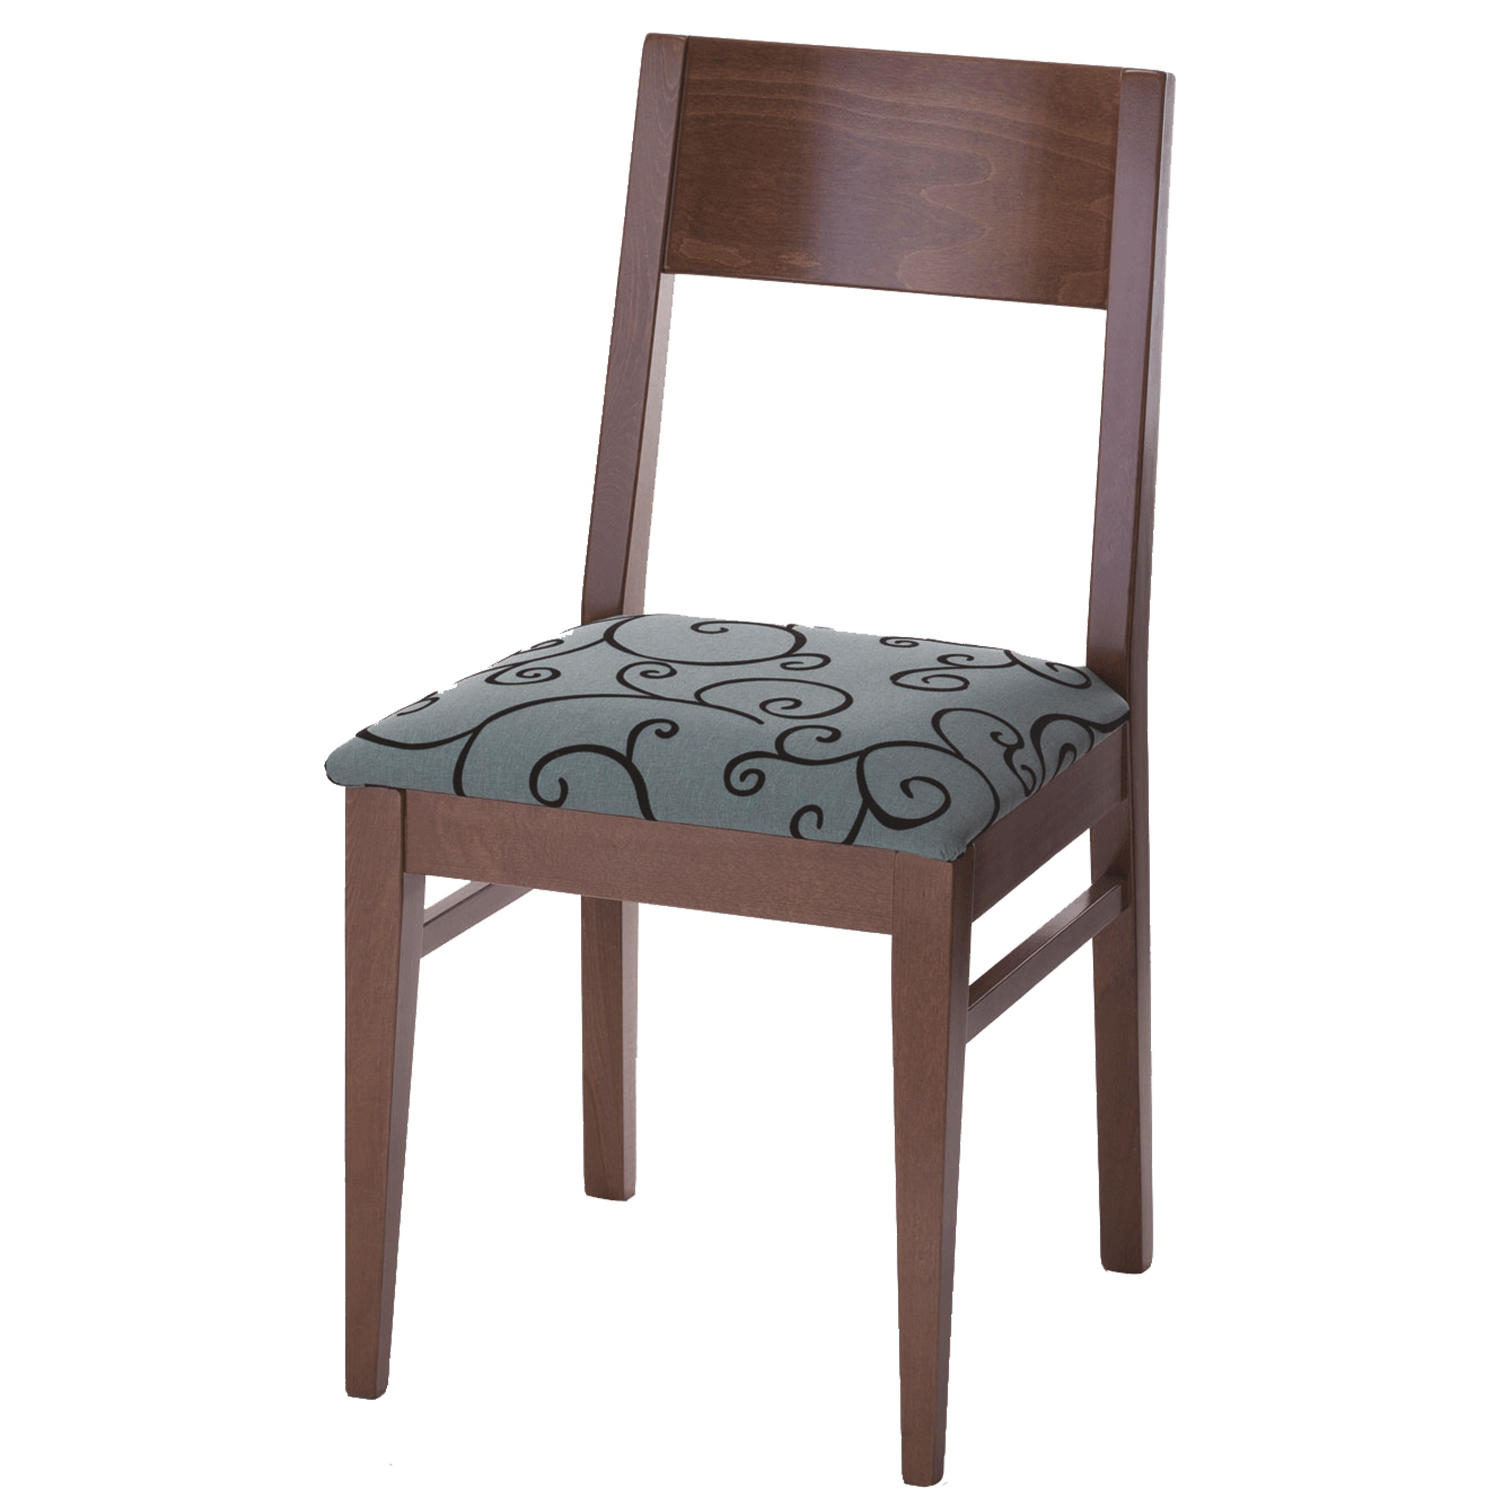 Hotel side chair with a blue patterned seat